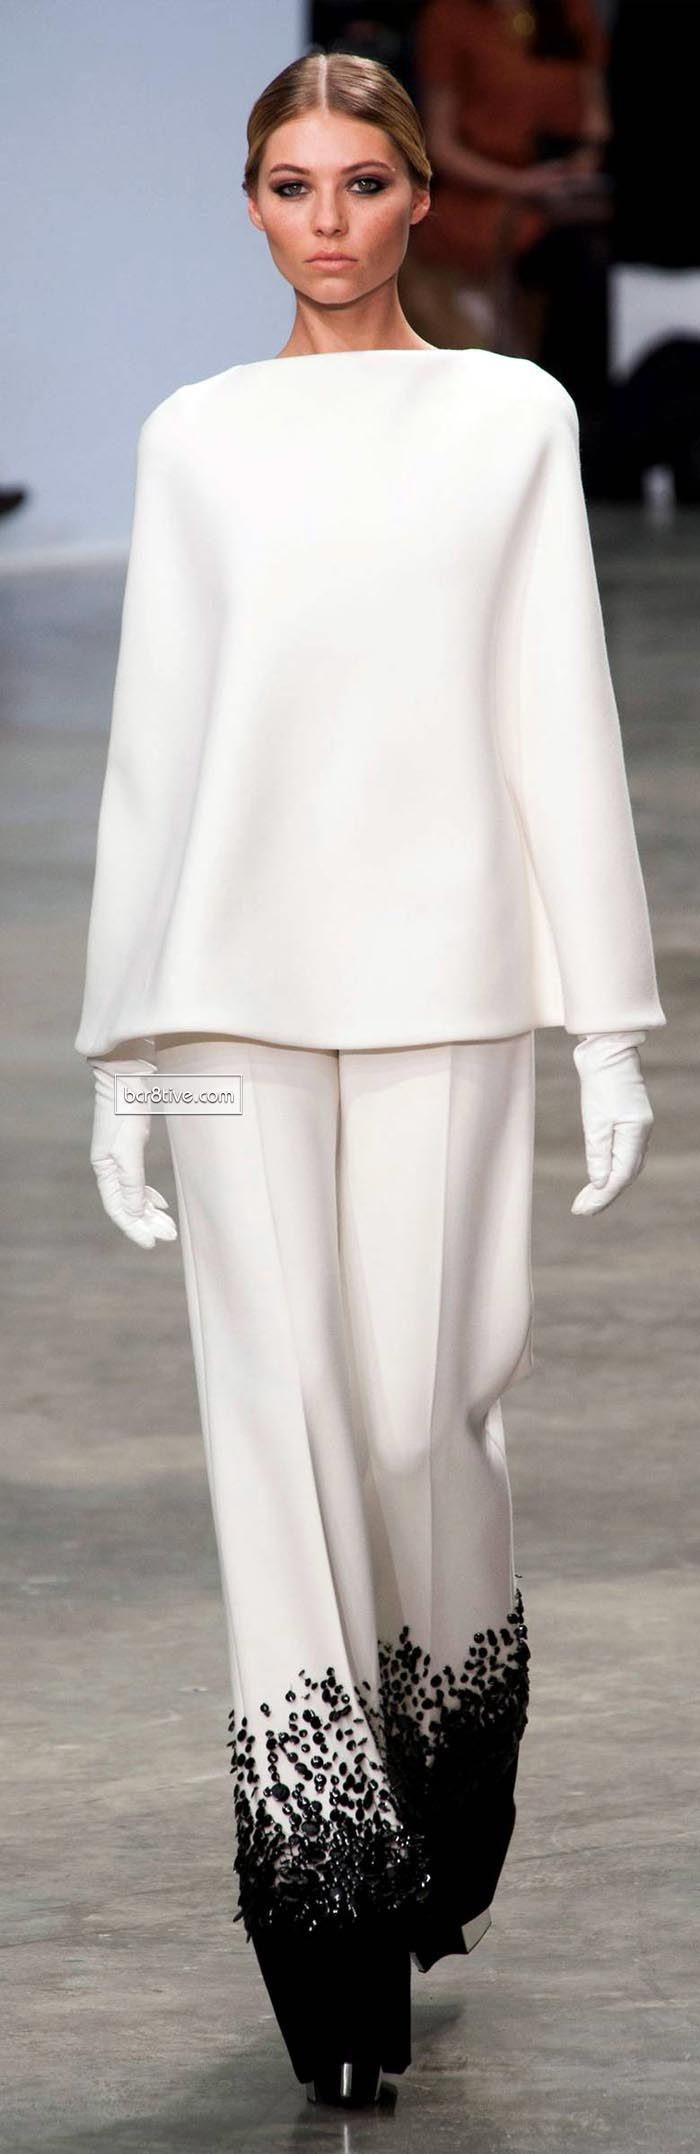 Stephane Rolland Spring Summer 2013-14 Haute Couture.....don't know why,  but I love this!